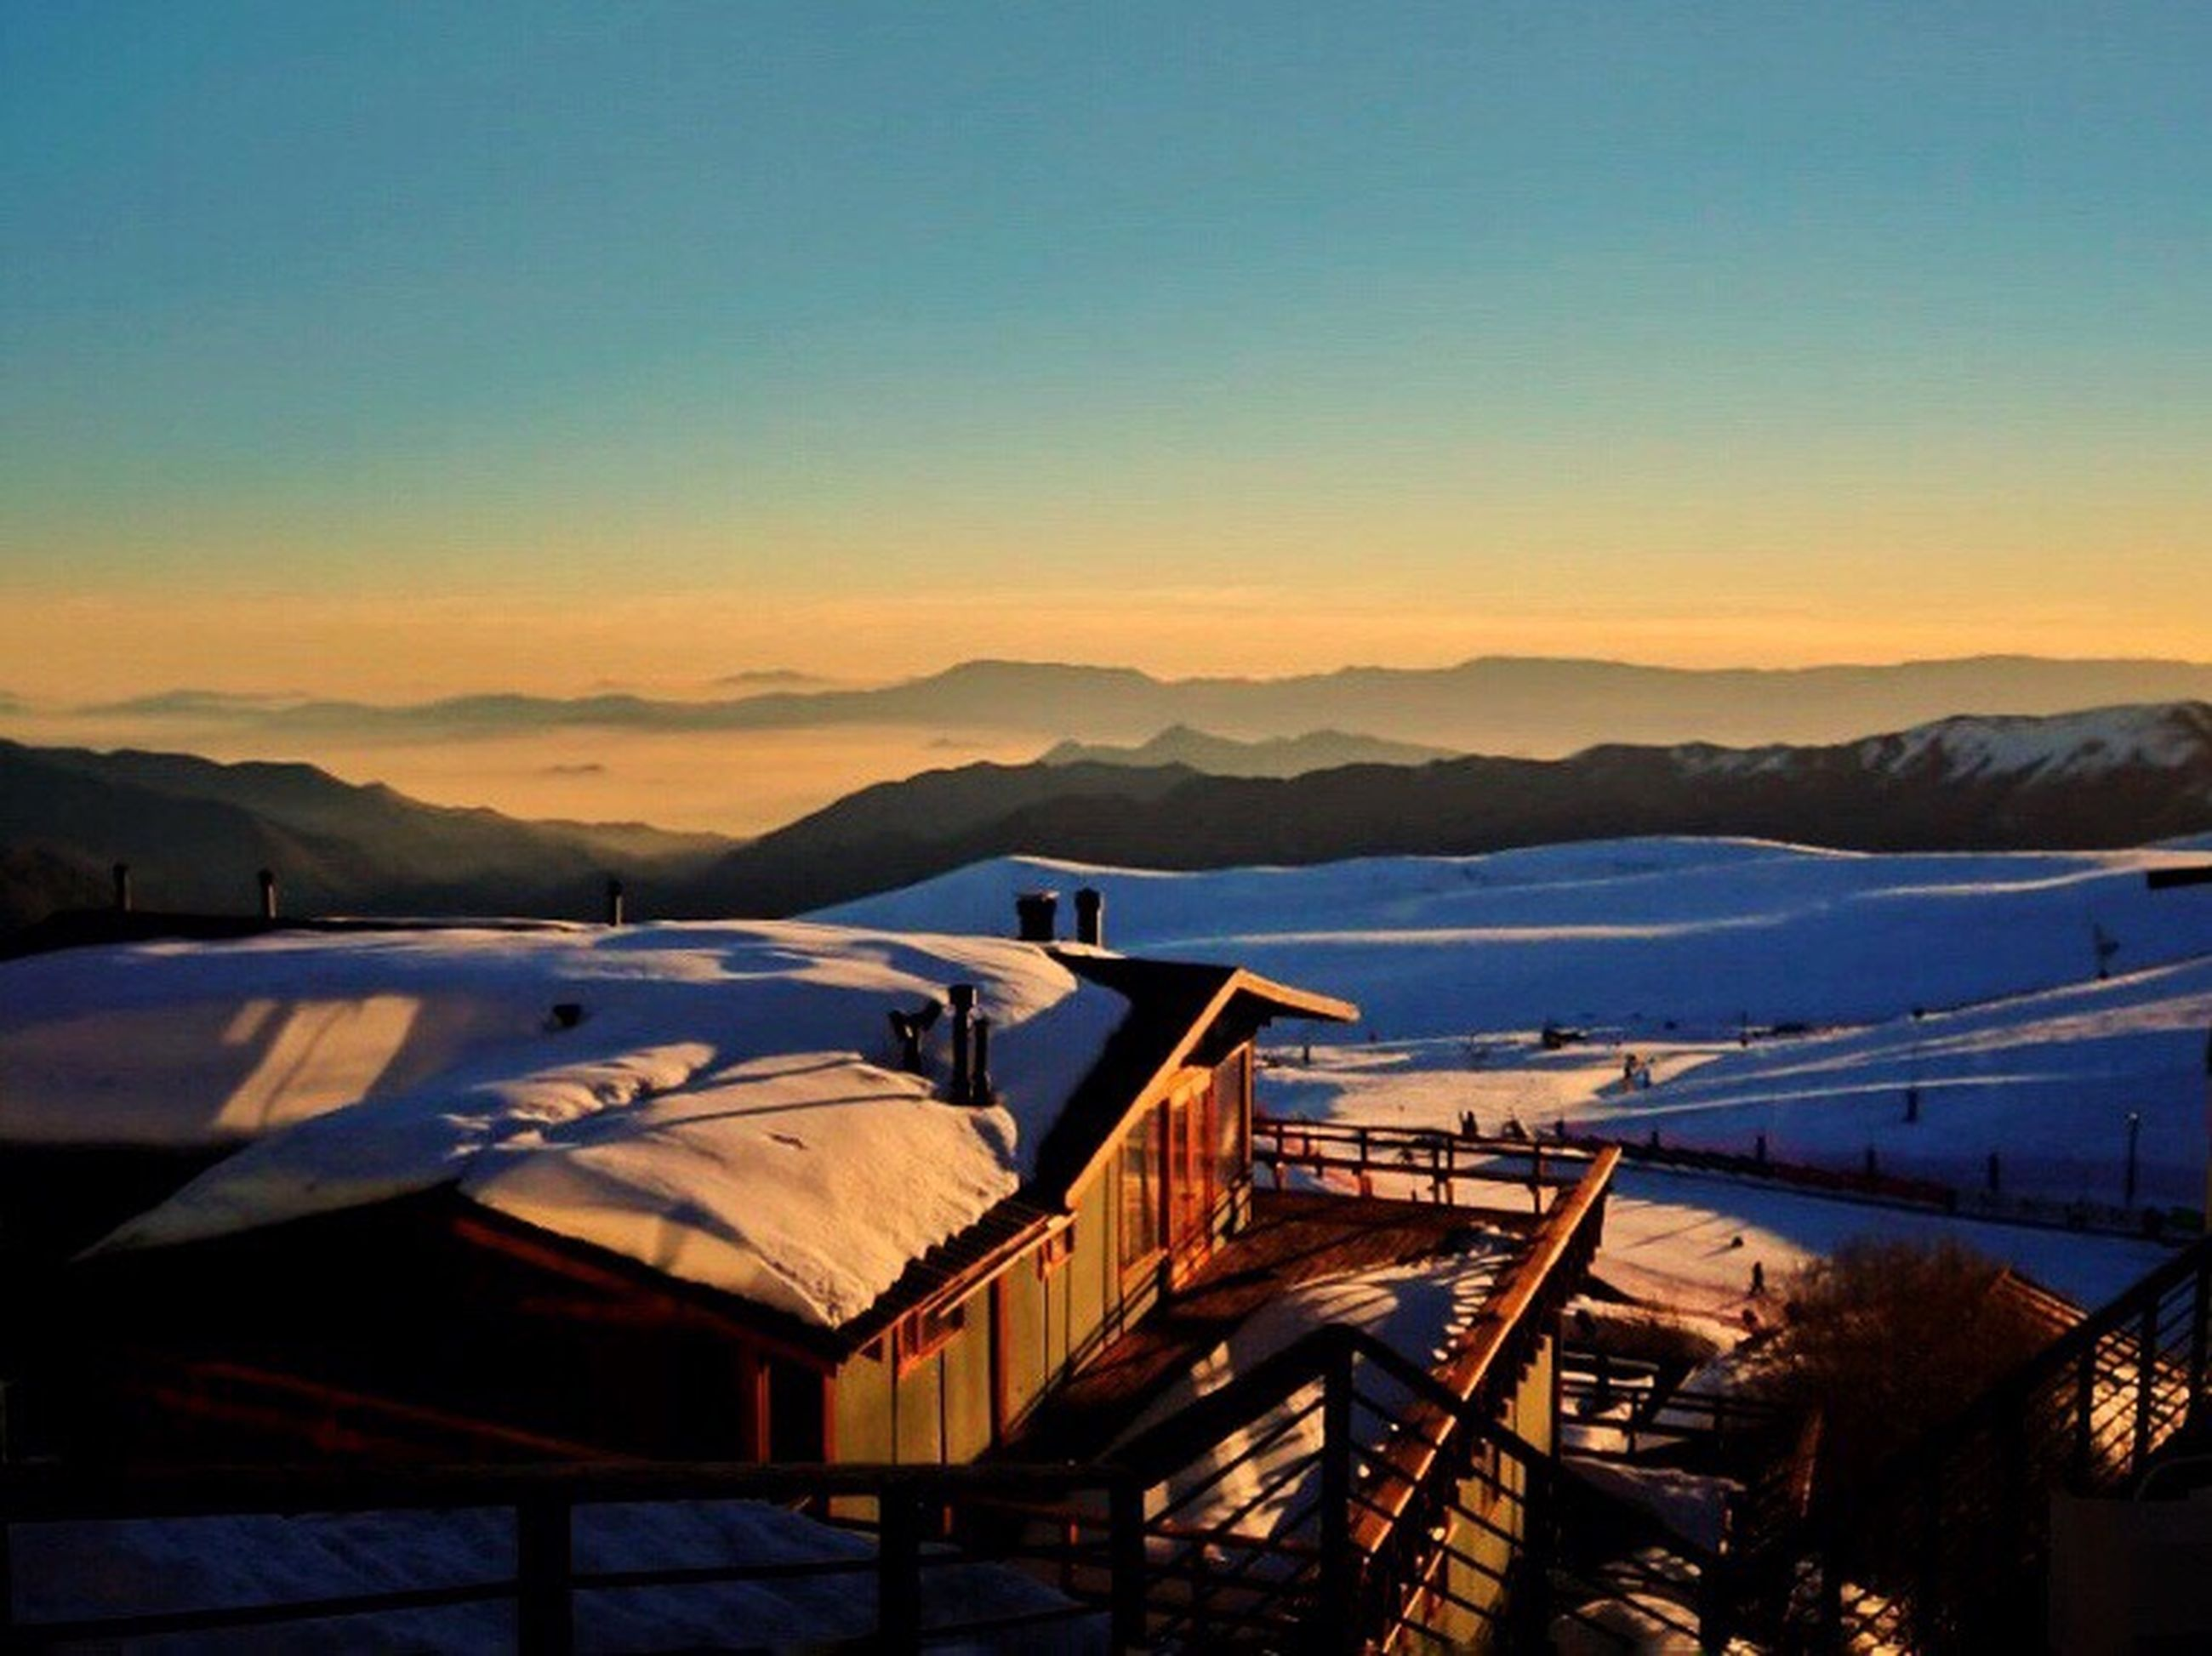 mountain, sunset, snow, winter, cold temperature, no people, nature, mountain range, outdoors, clear sky, scenics, tranquil scene, built structure, transportation, sky, tranquility, beauty in nature, roof, sunlight, architecture, building exterior, landscape, day